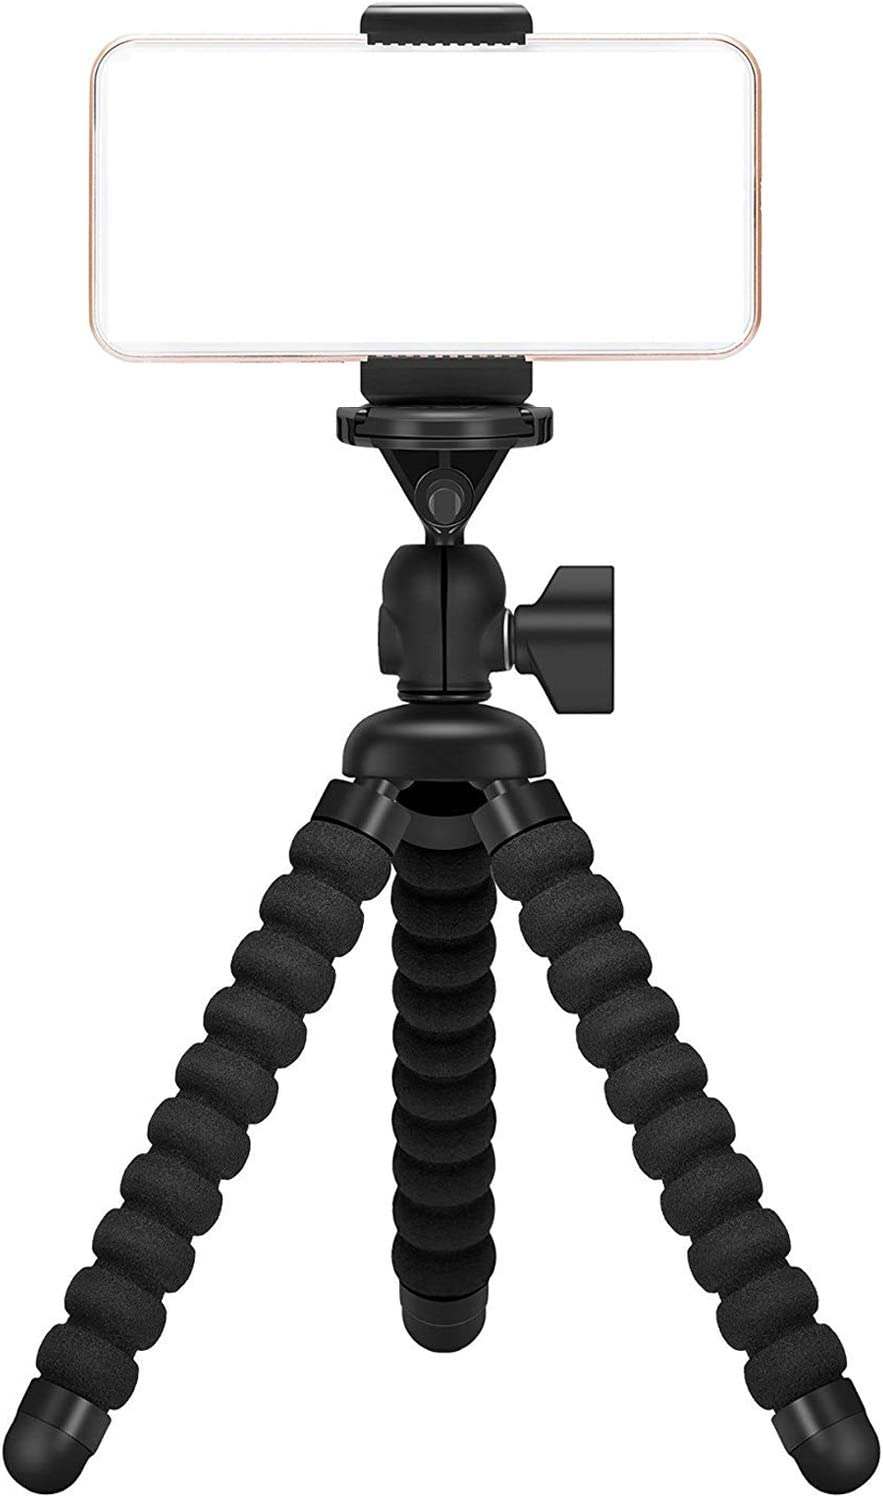 Ailun Ranking TOP6 Digtal Camera Tripod Mount iPhone favorite Holder for Stand